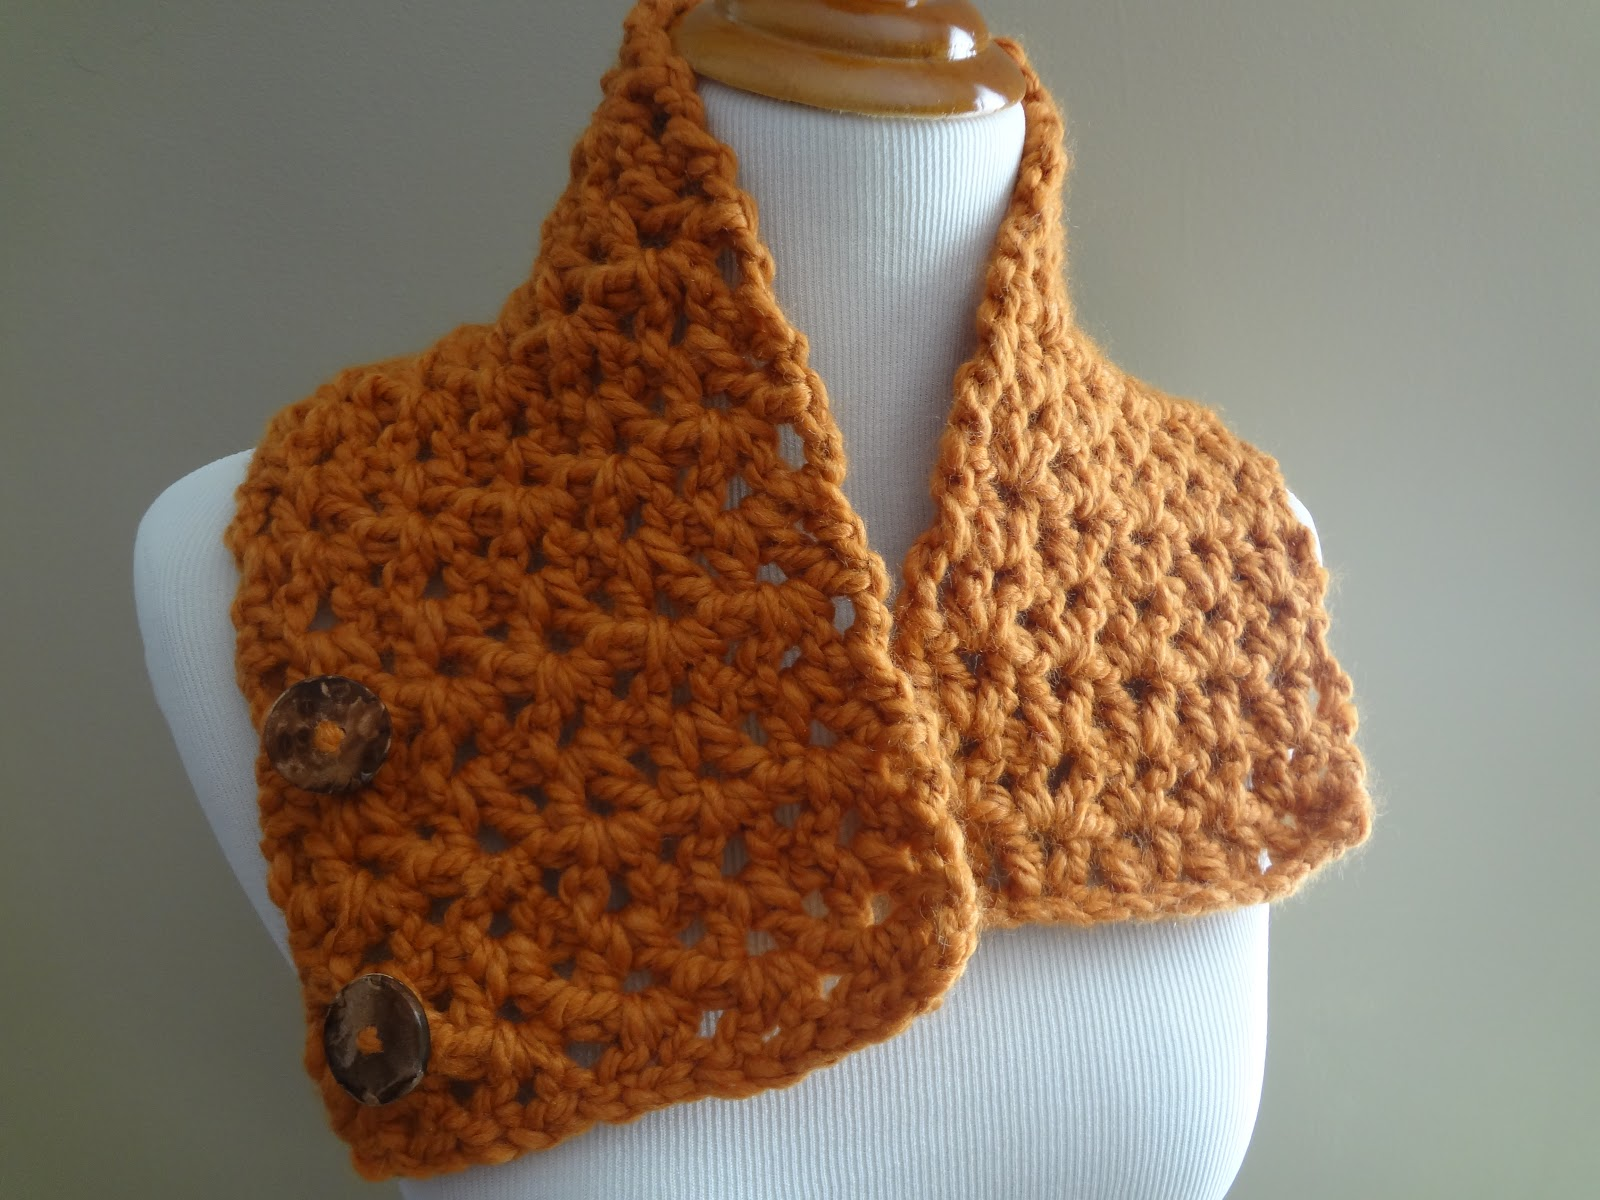 Fiber flux free crochet patternbutternut squash neckwarmer length the neckwarmer pictured is 26 inches long if you need yours to be a bit longer just work extra rows as needed until desired length is reached bankloansurffo Gallery